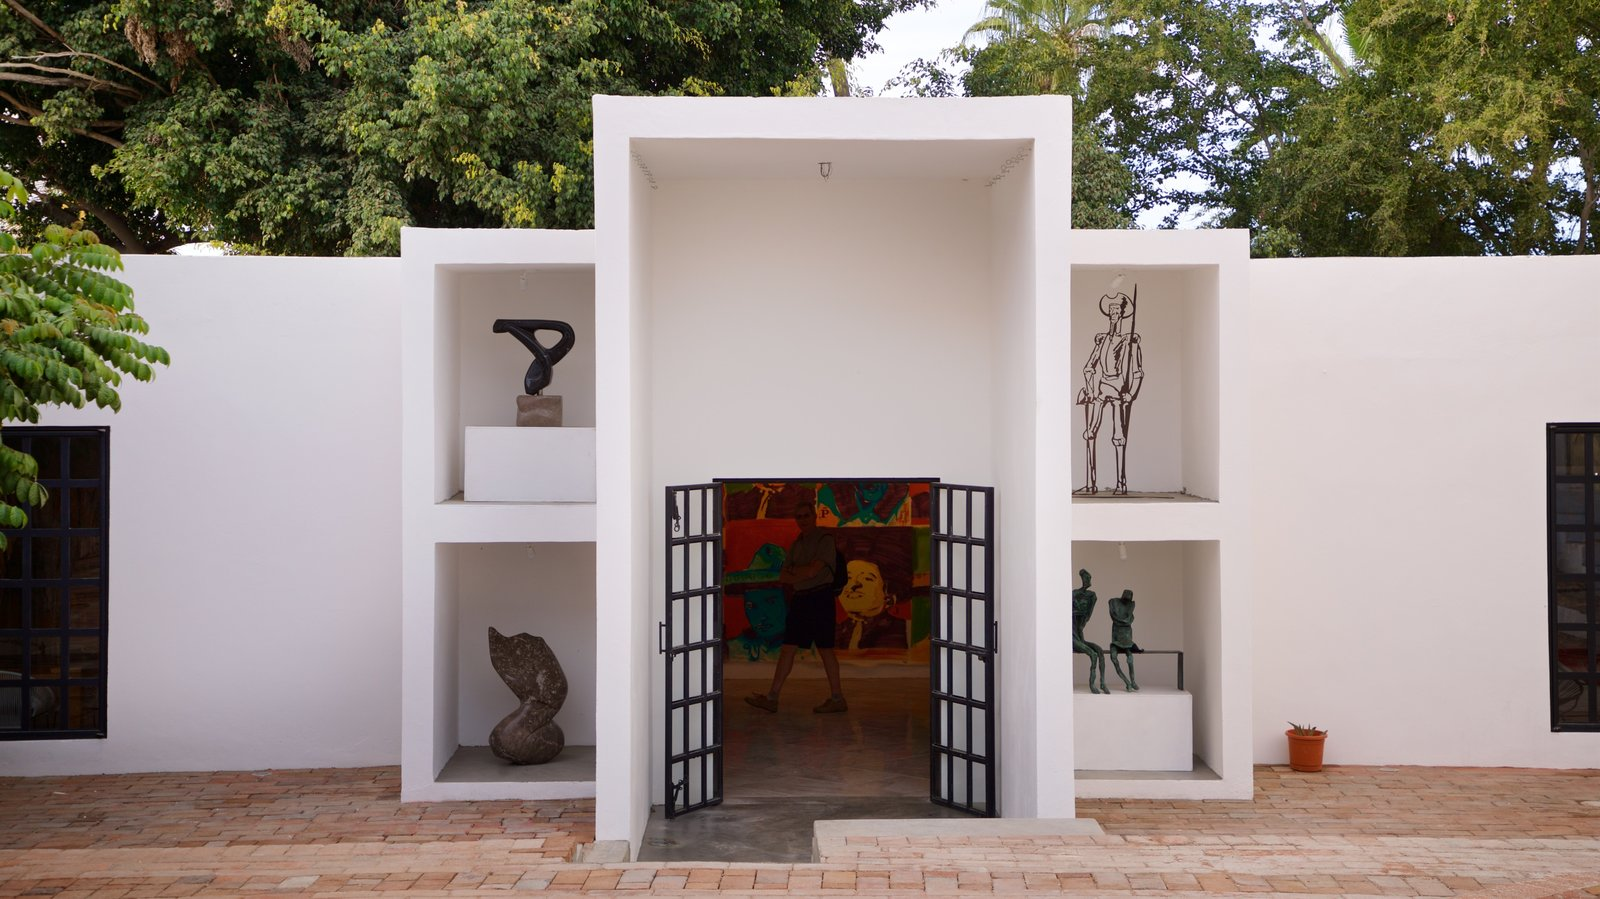 San Jose del Cabo Art District featuring outdoor art